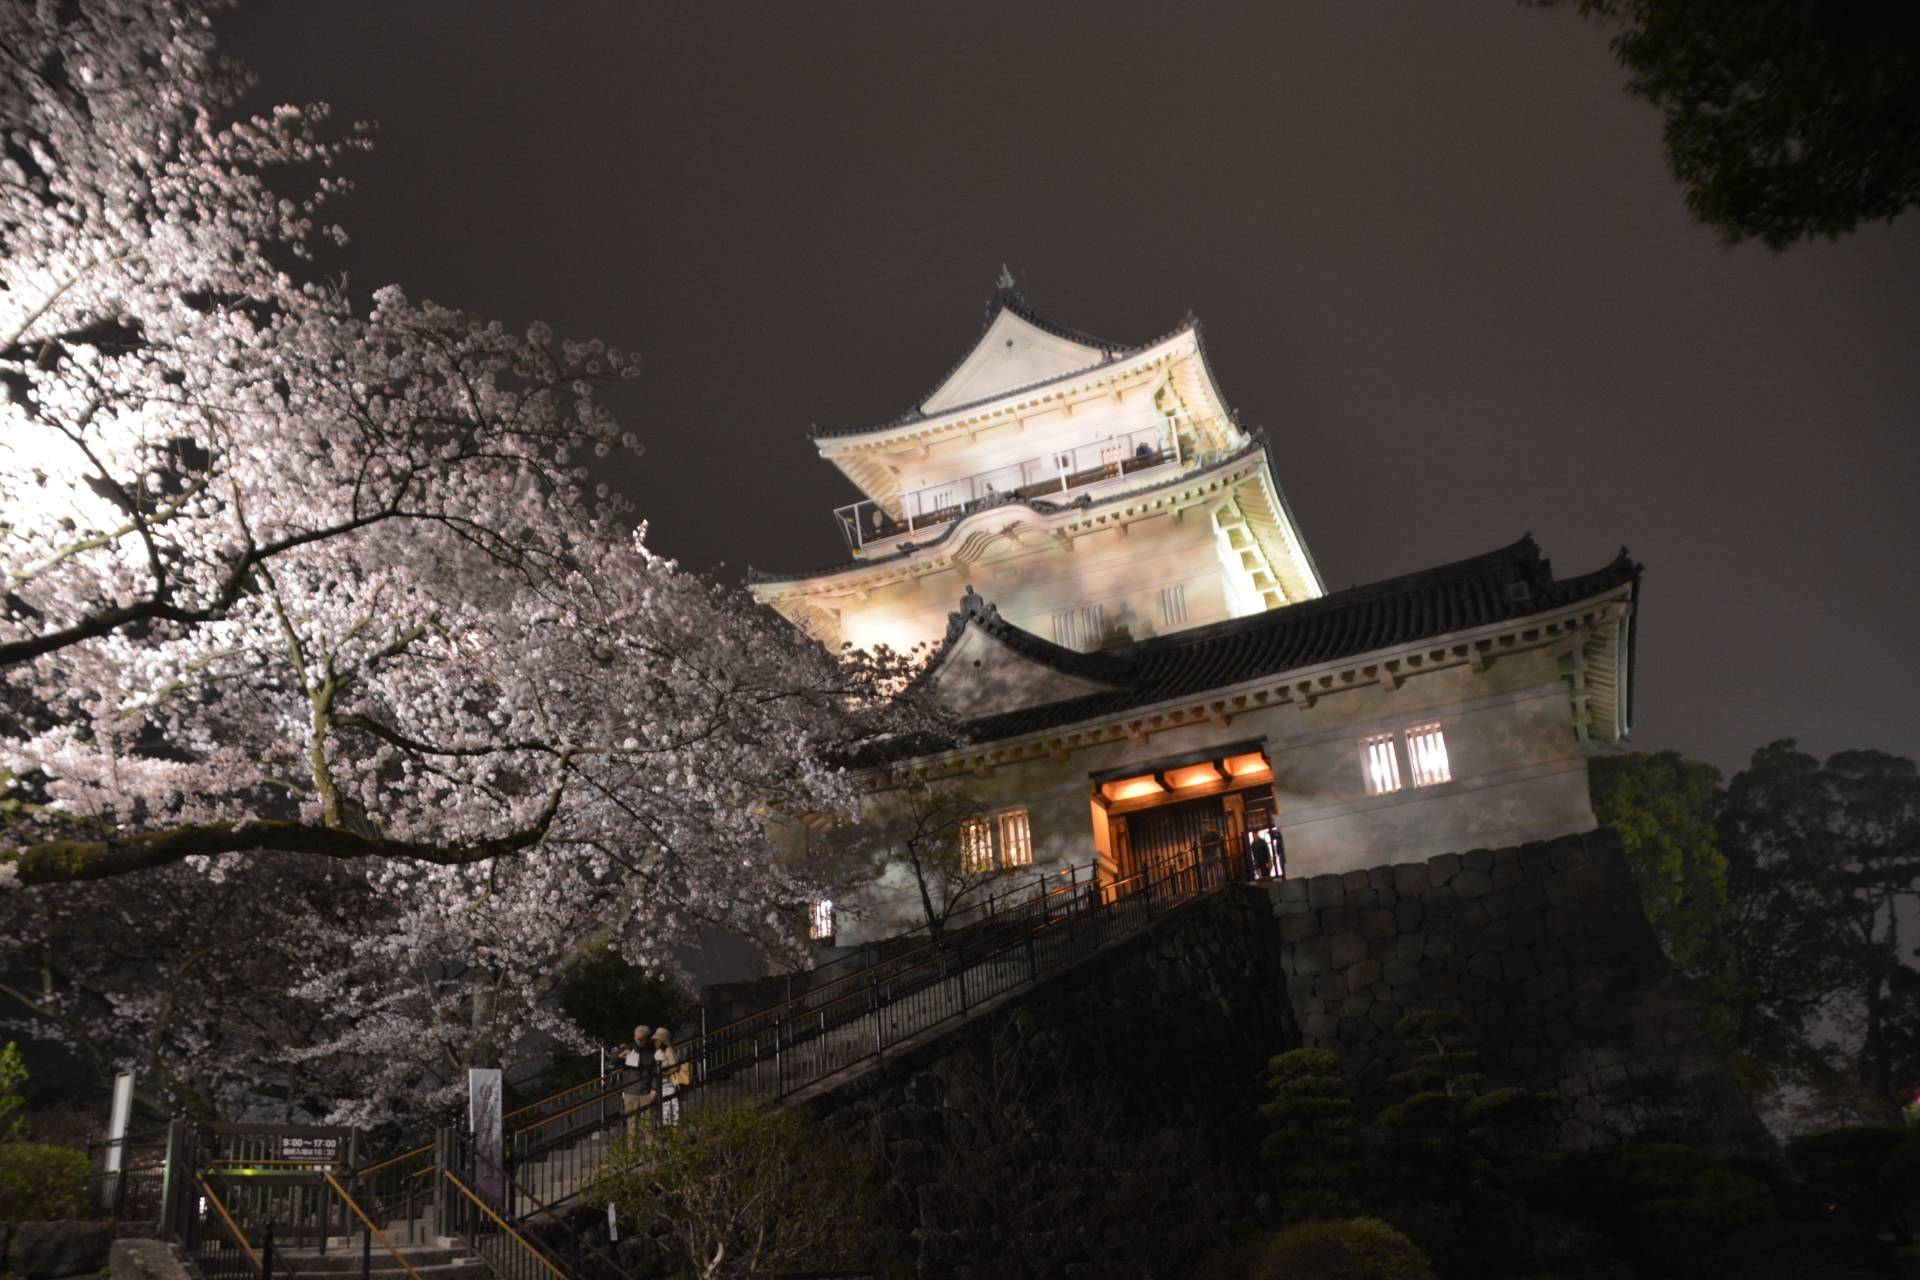 A photo of the Odaawara Castle during the Sakura Season